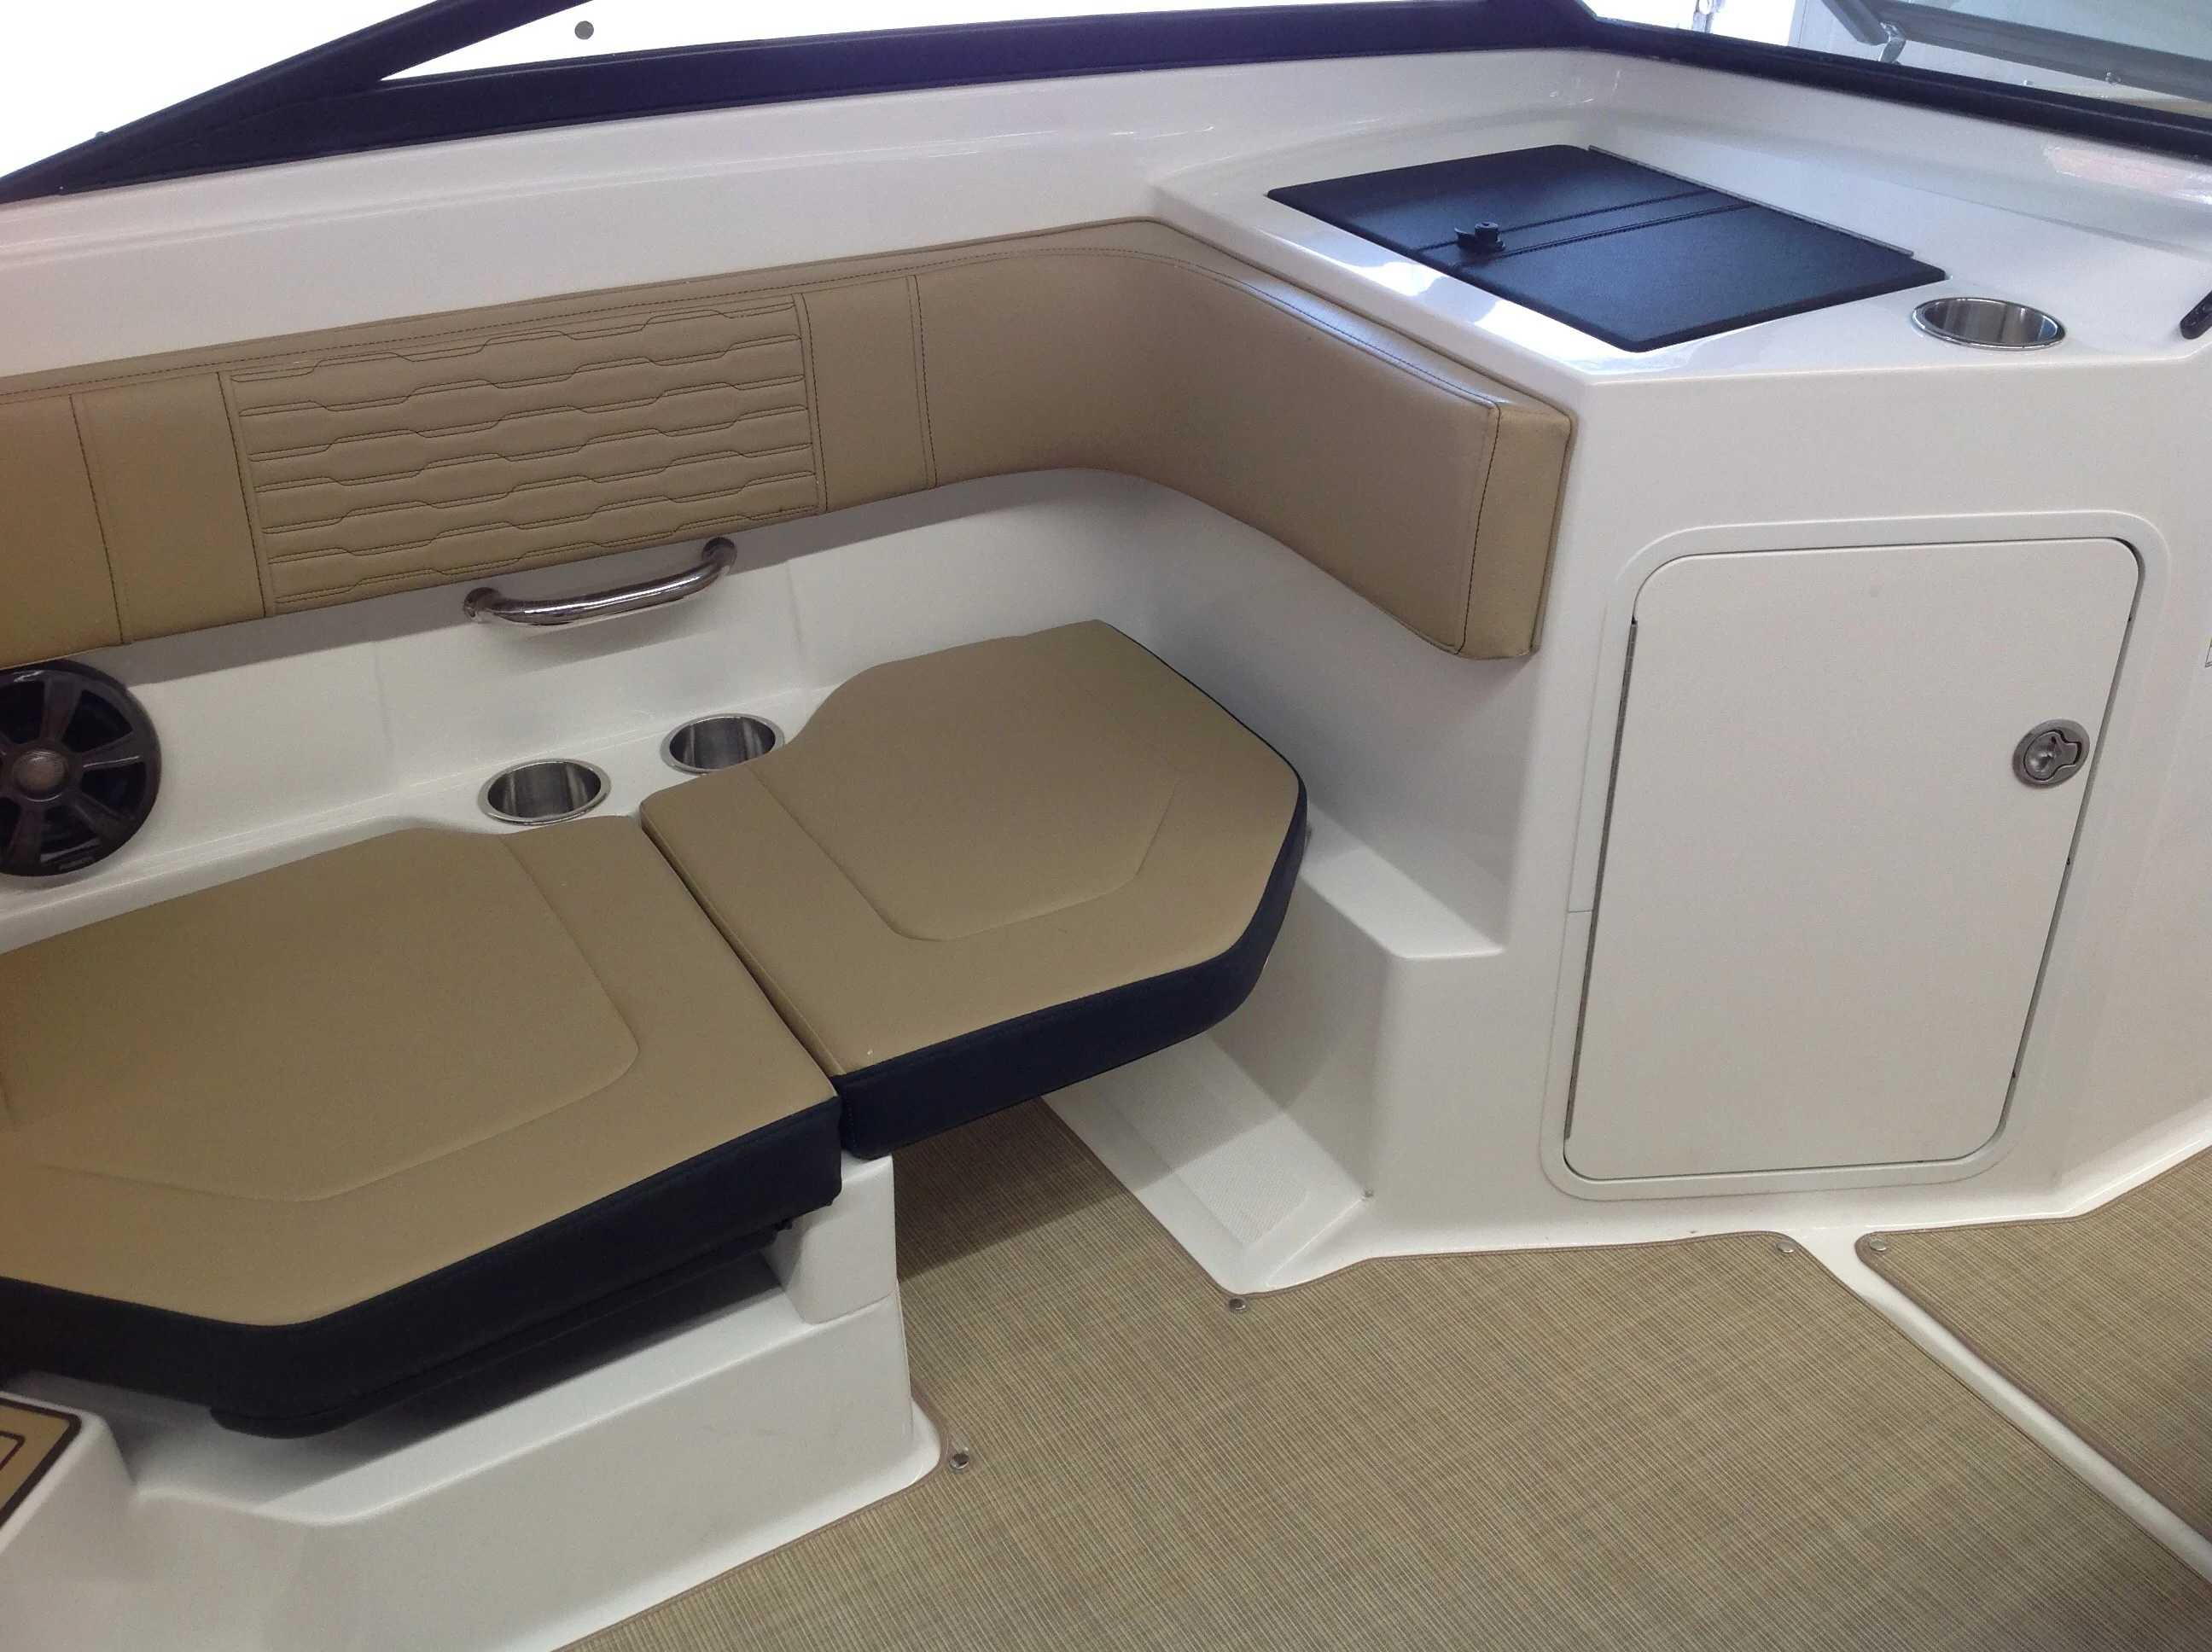 2021 Sea Ray boat for sale, model of the boat is 190 spxo & Image # 10 of 14